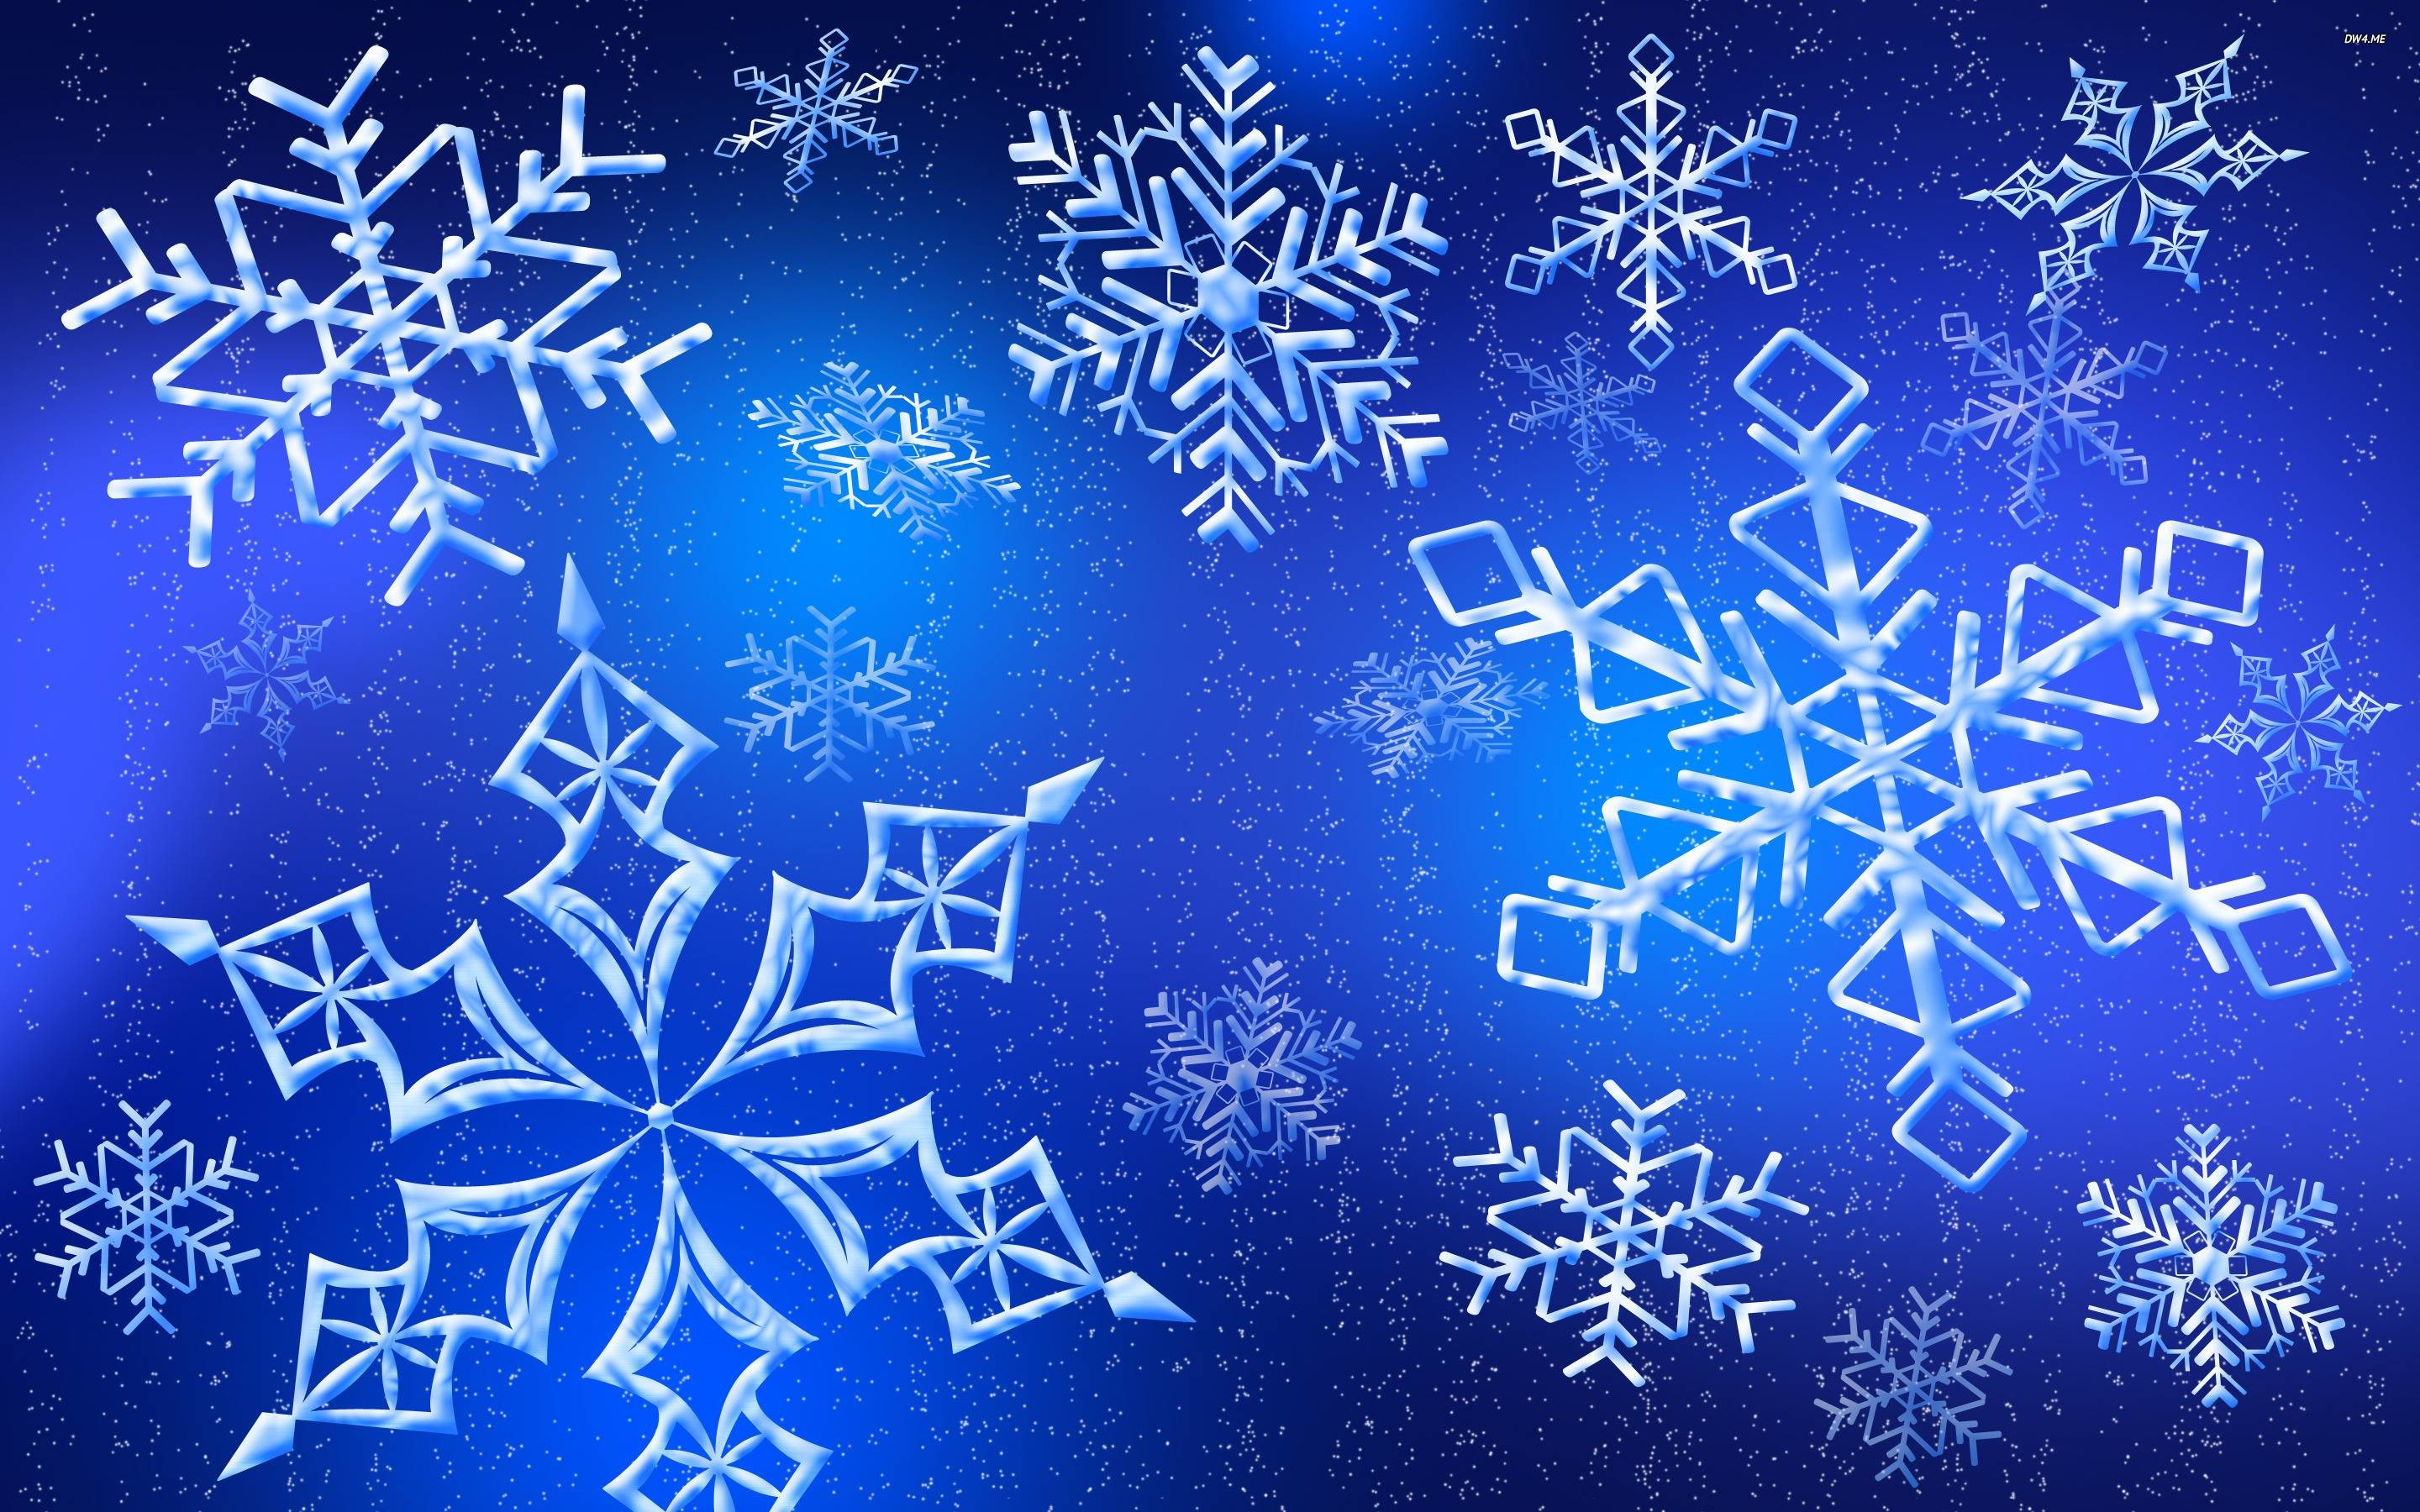 Res: 2880x1800, Snowflakes Wallpapers - Full HD wallpaper search